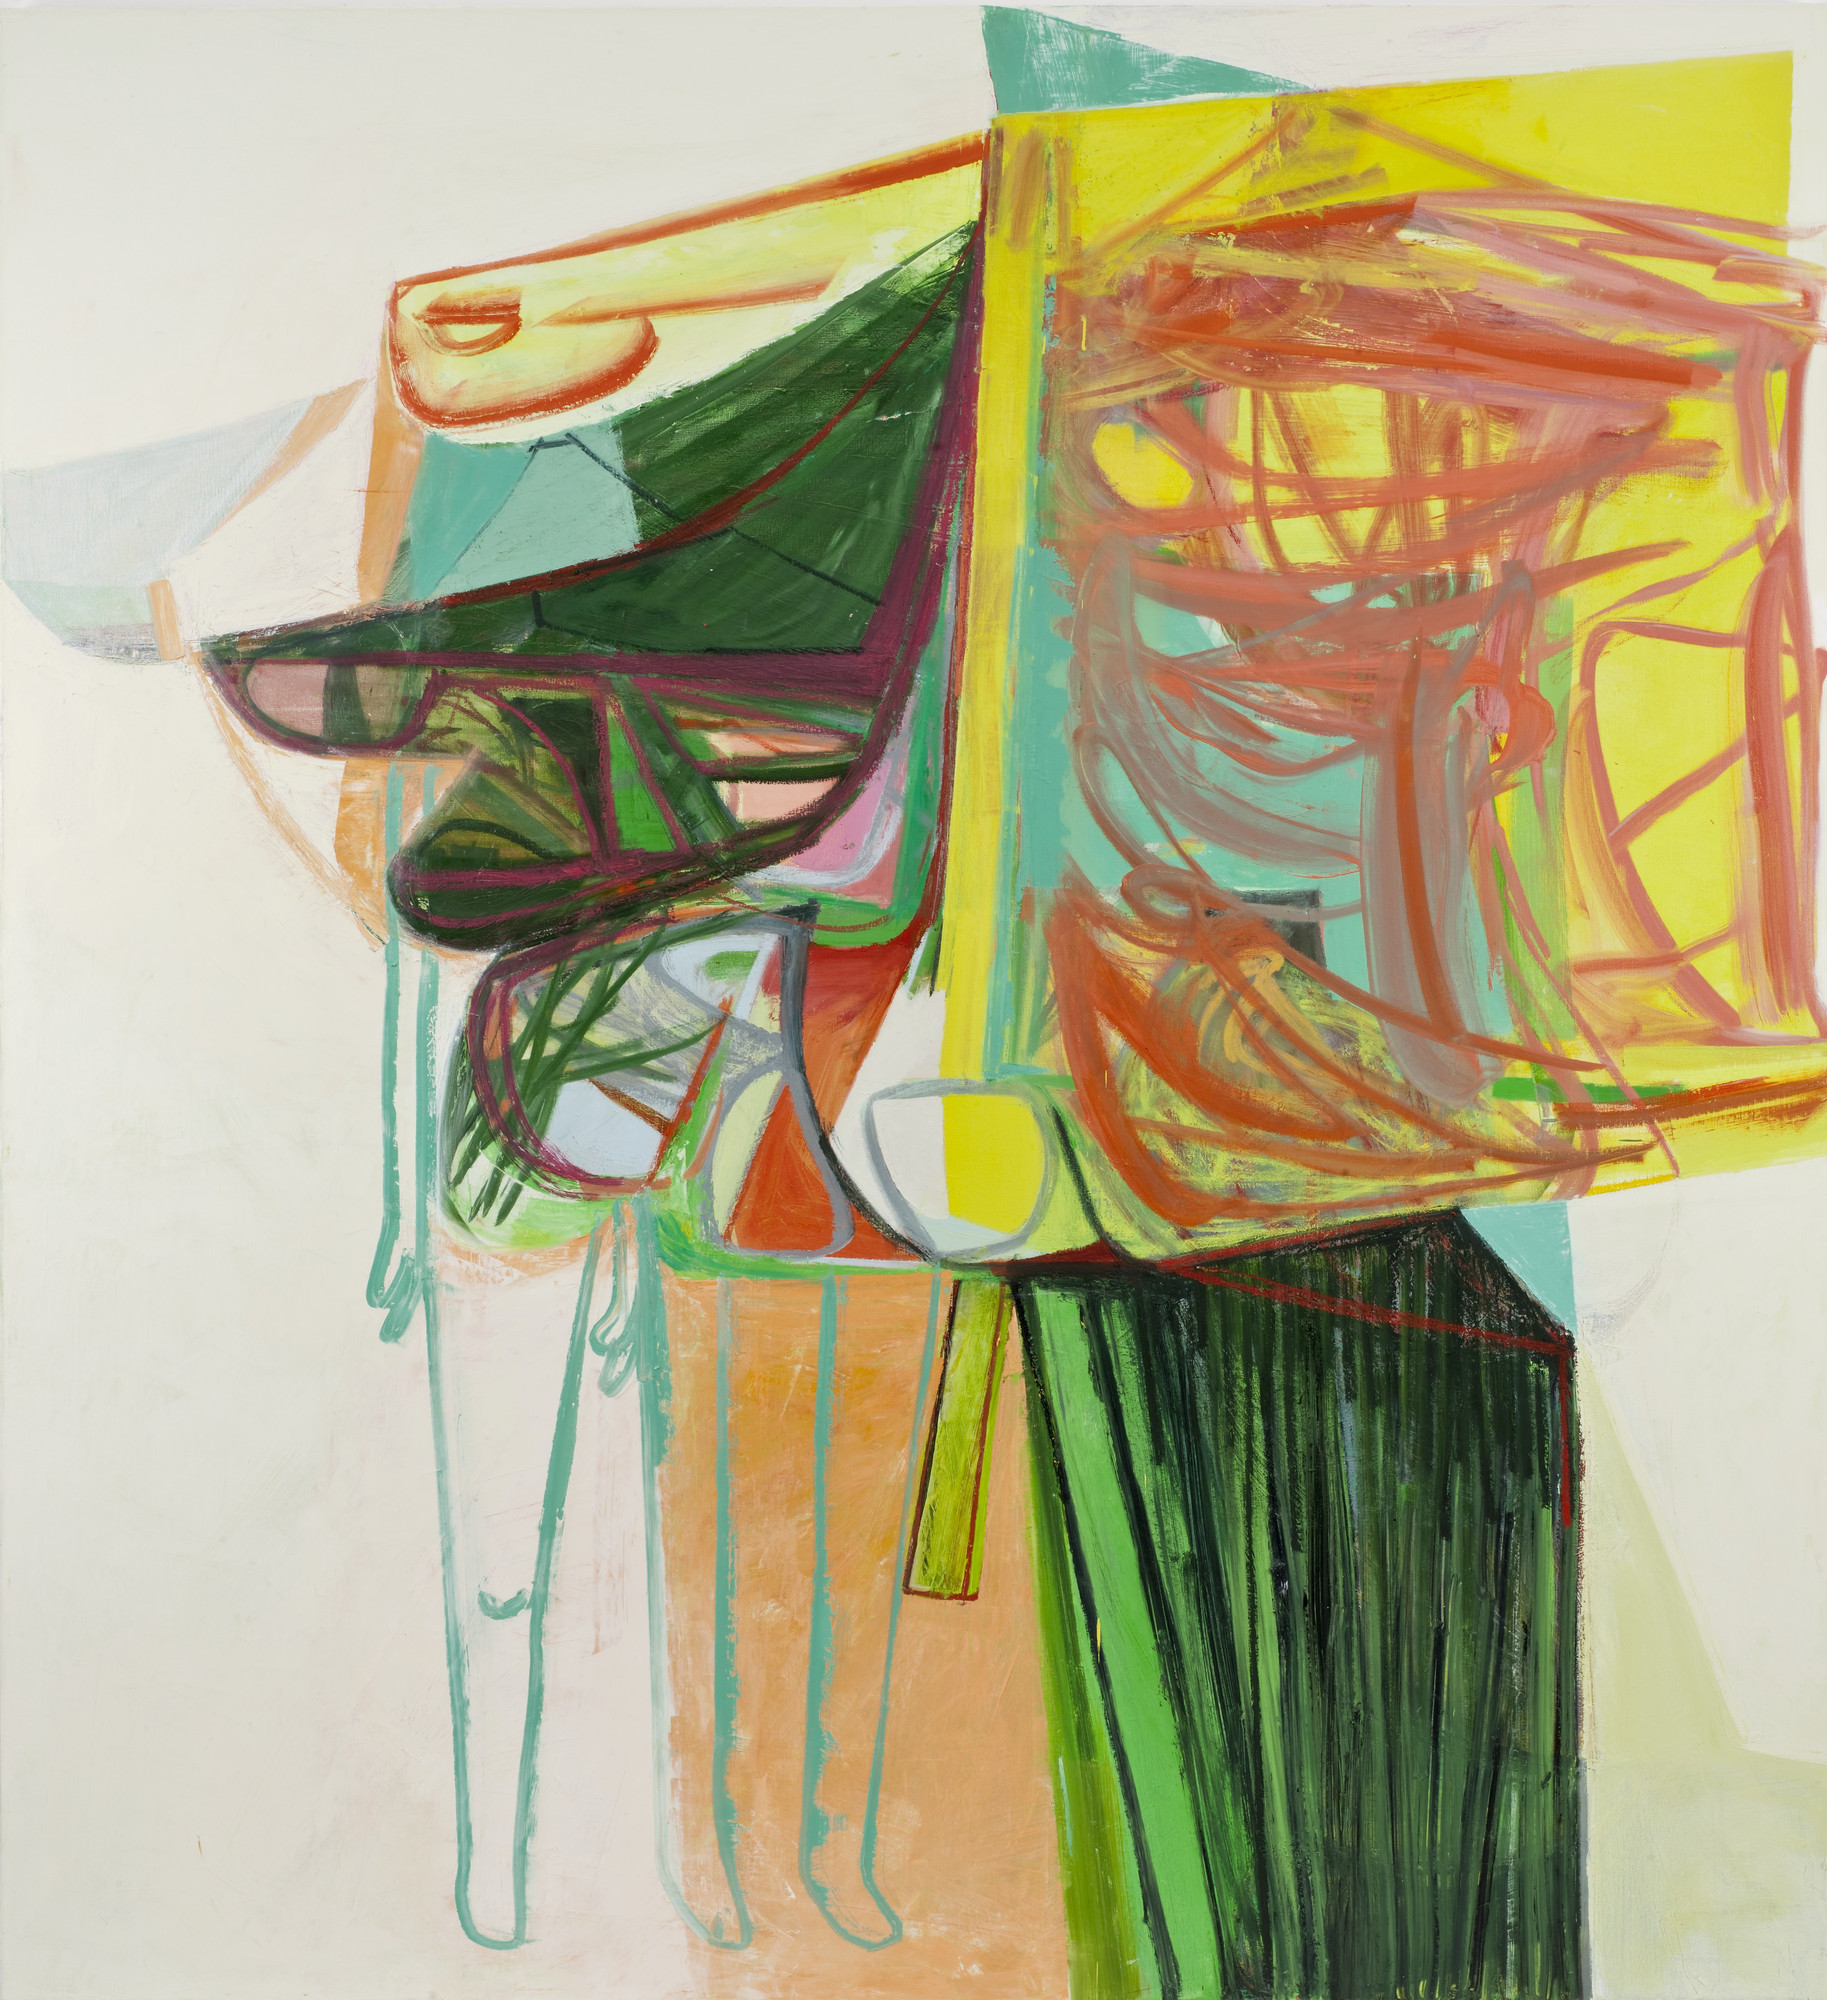 Amy Sillman. Psychology Today. 2006